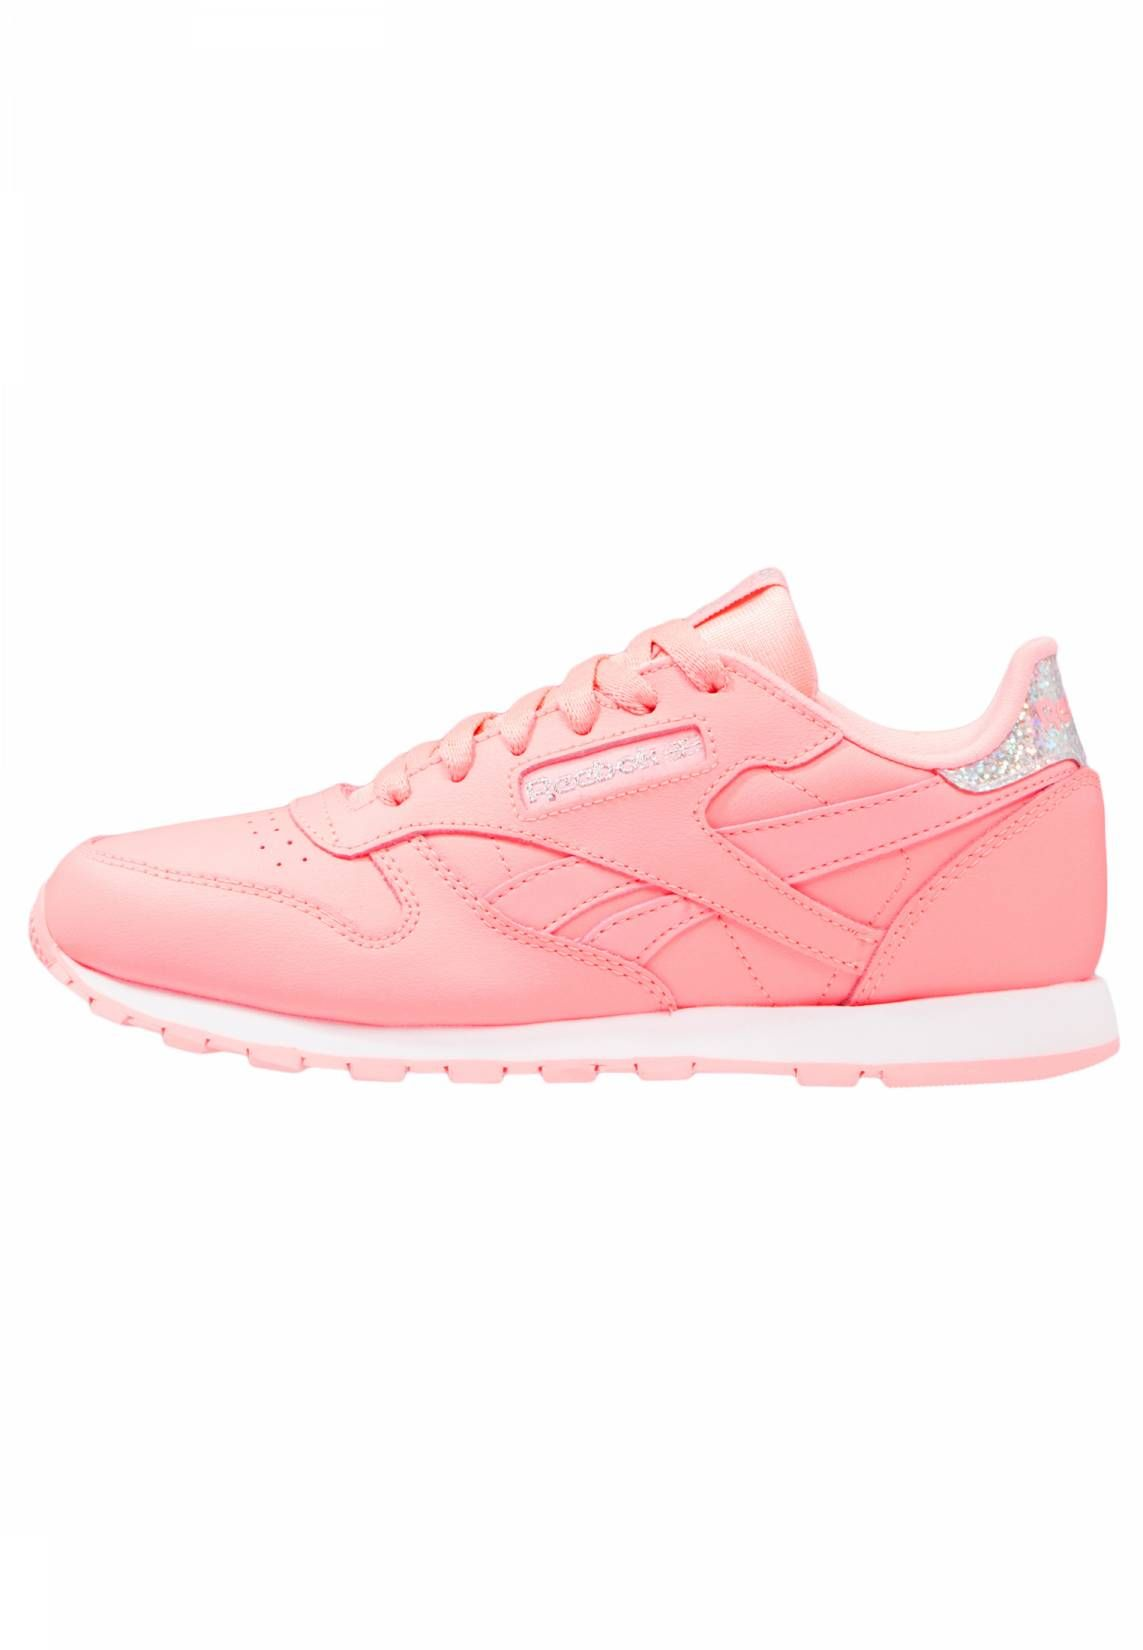 sports shoes 22e6f c147a Basses Zalando Classic Baskets Melonwhite Sour Tn8q5z5wv1